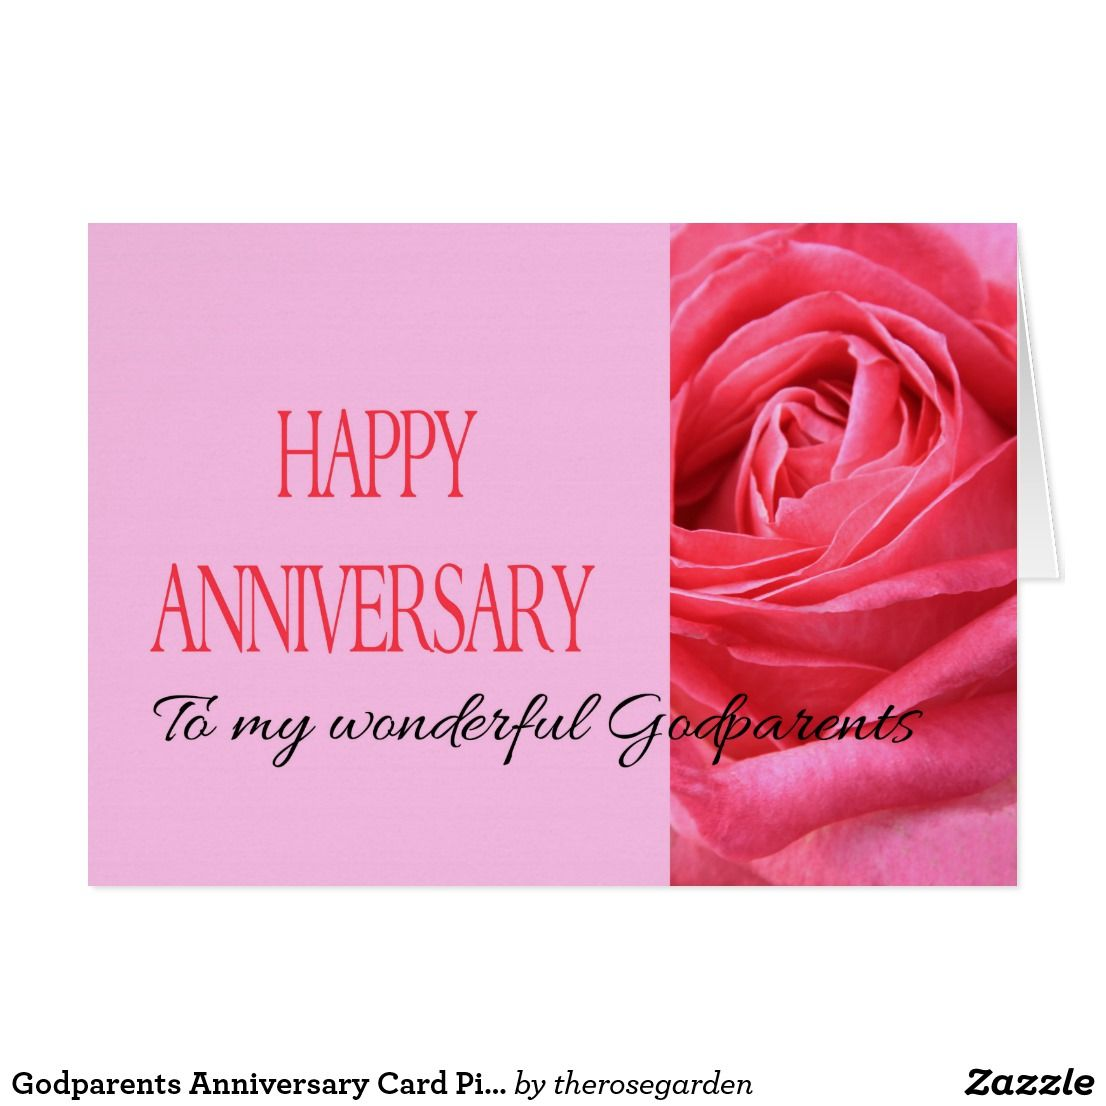 Godparents Anniversary Card Pink Rose Surprise A Special Couple On